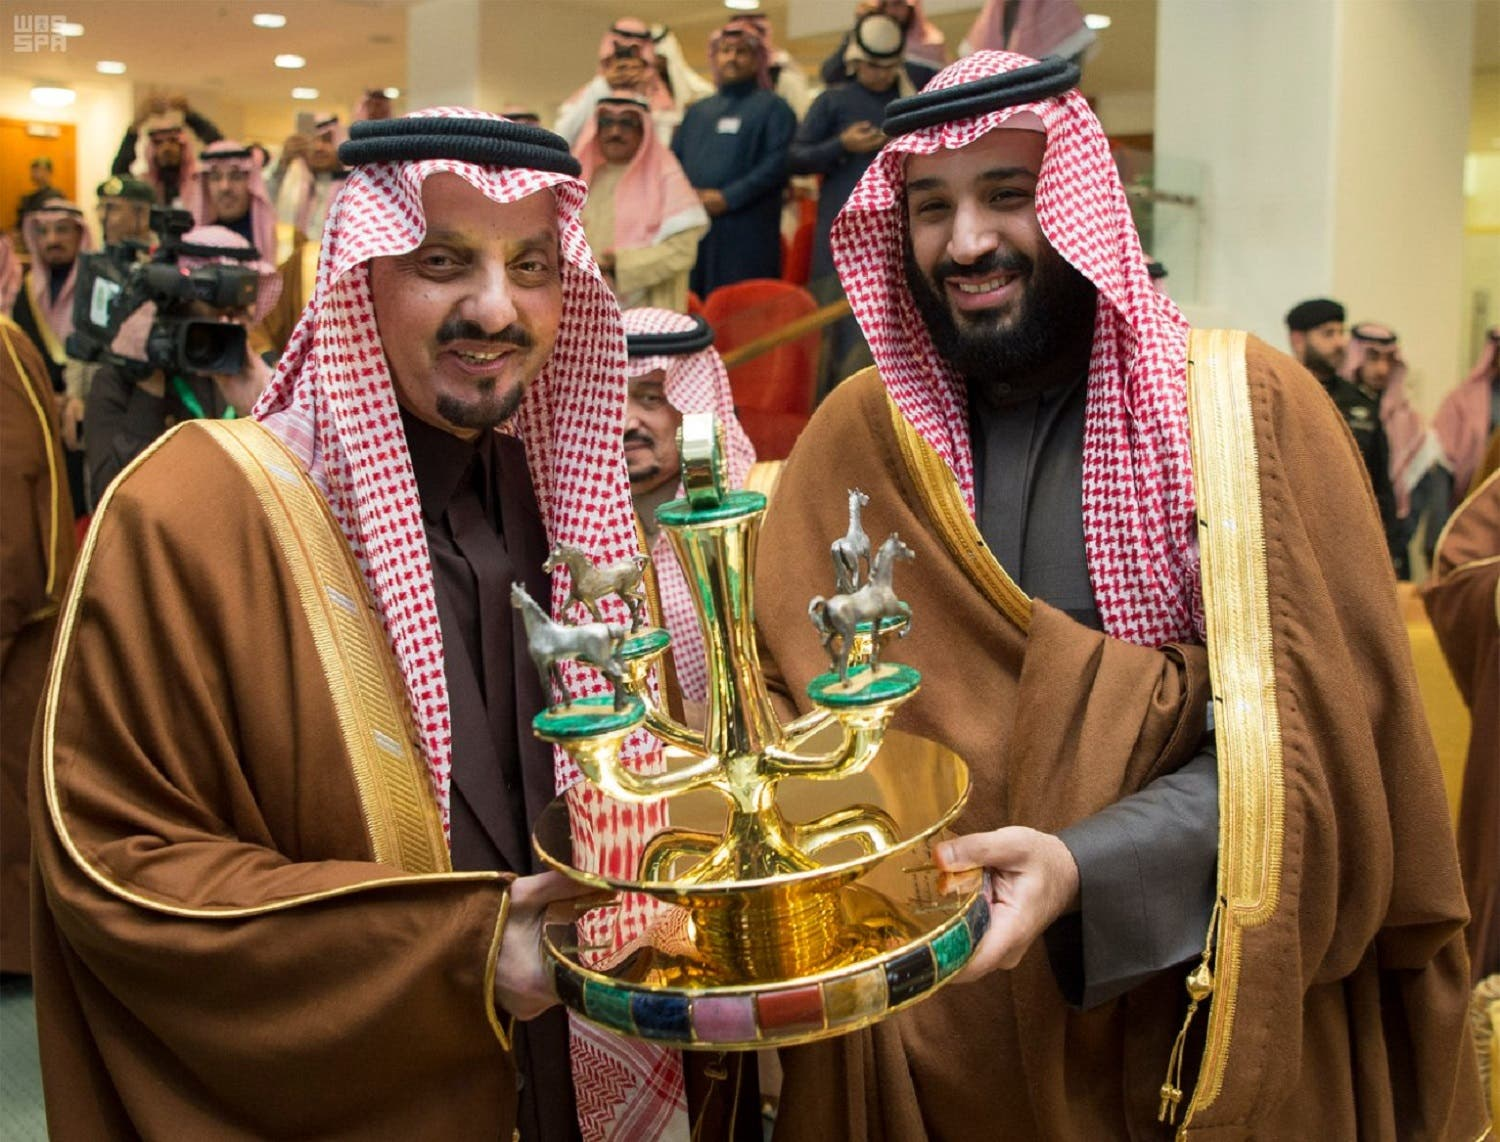 Saudi Crown Prince Mohammed bin Salman presented two annual trophies to Prince Faisal bin Khalid on the victories of Al-Shamali and Rossenbaum. (SPA)